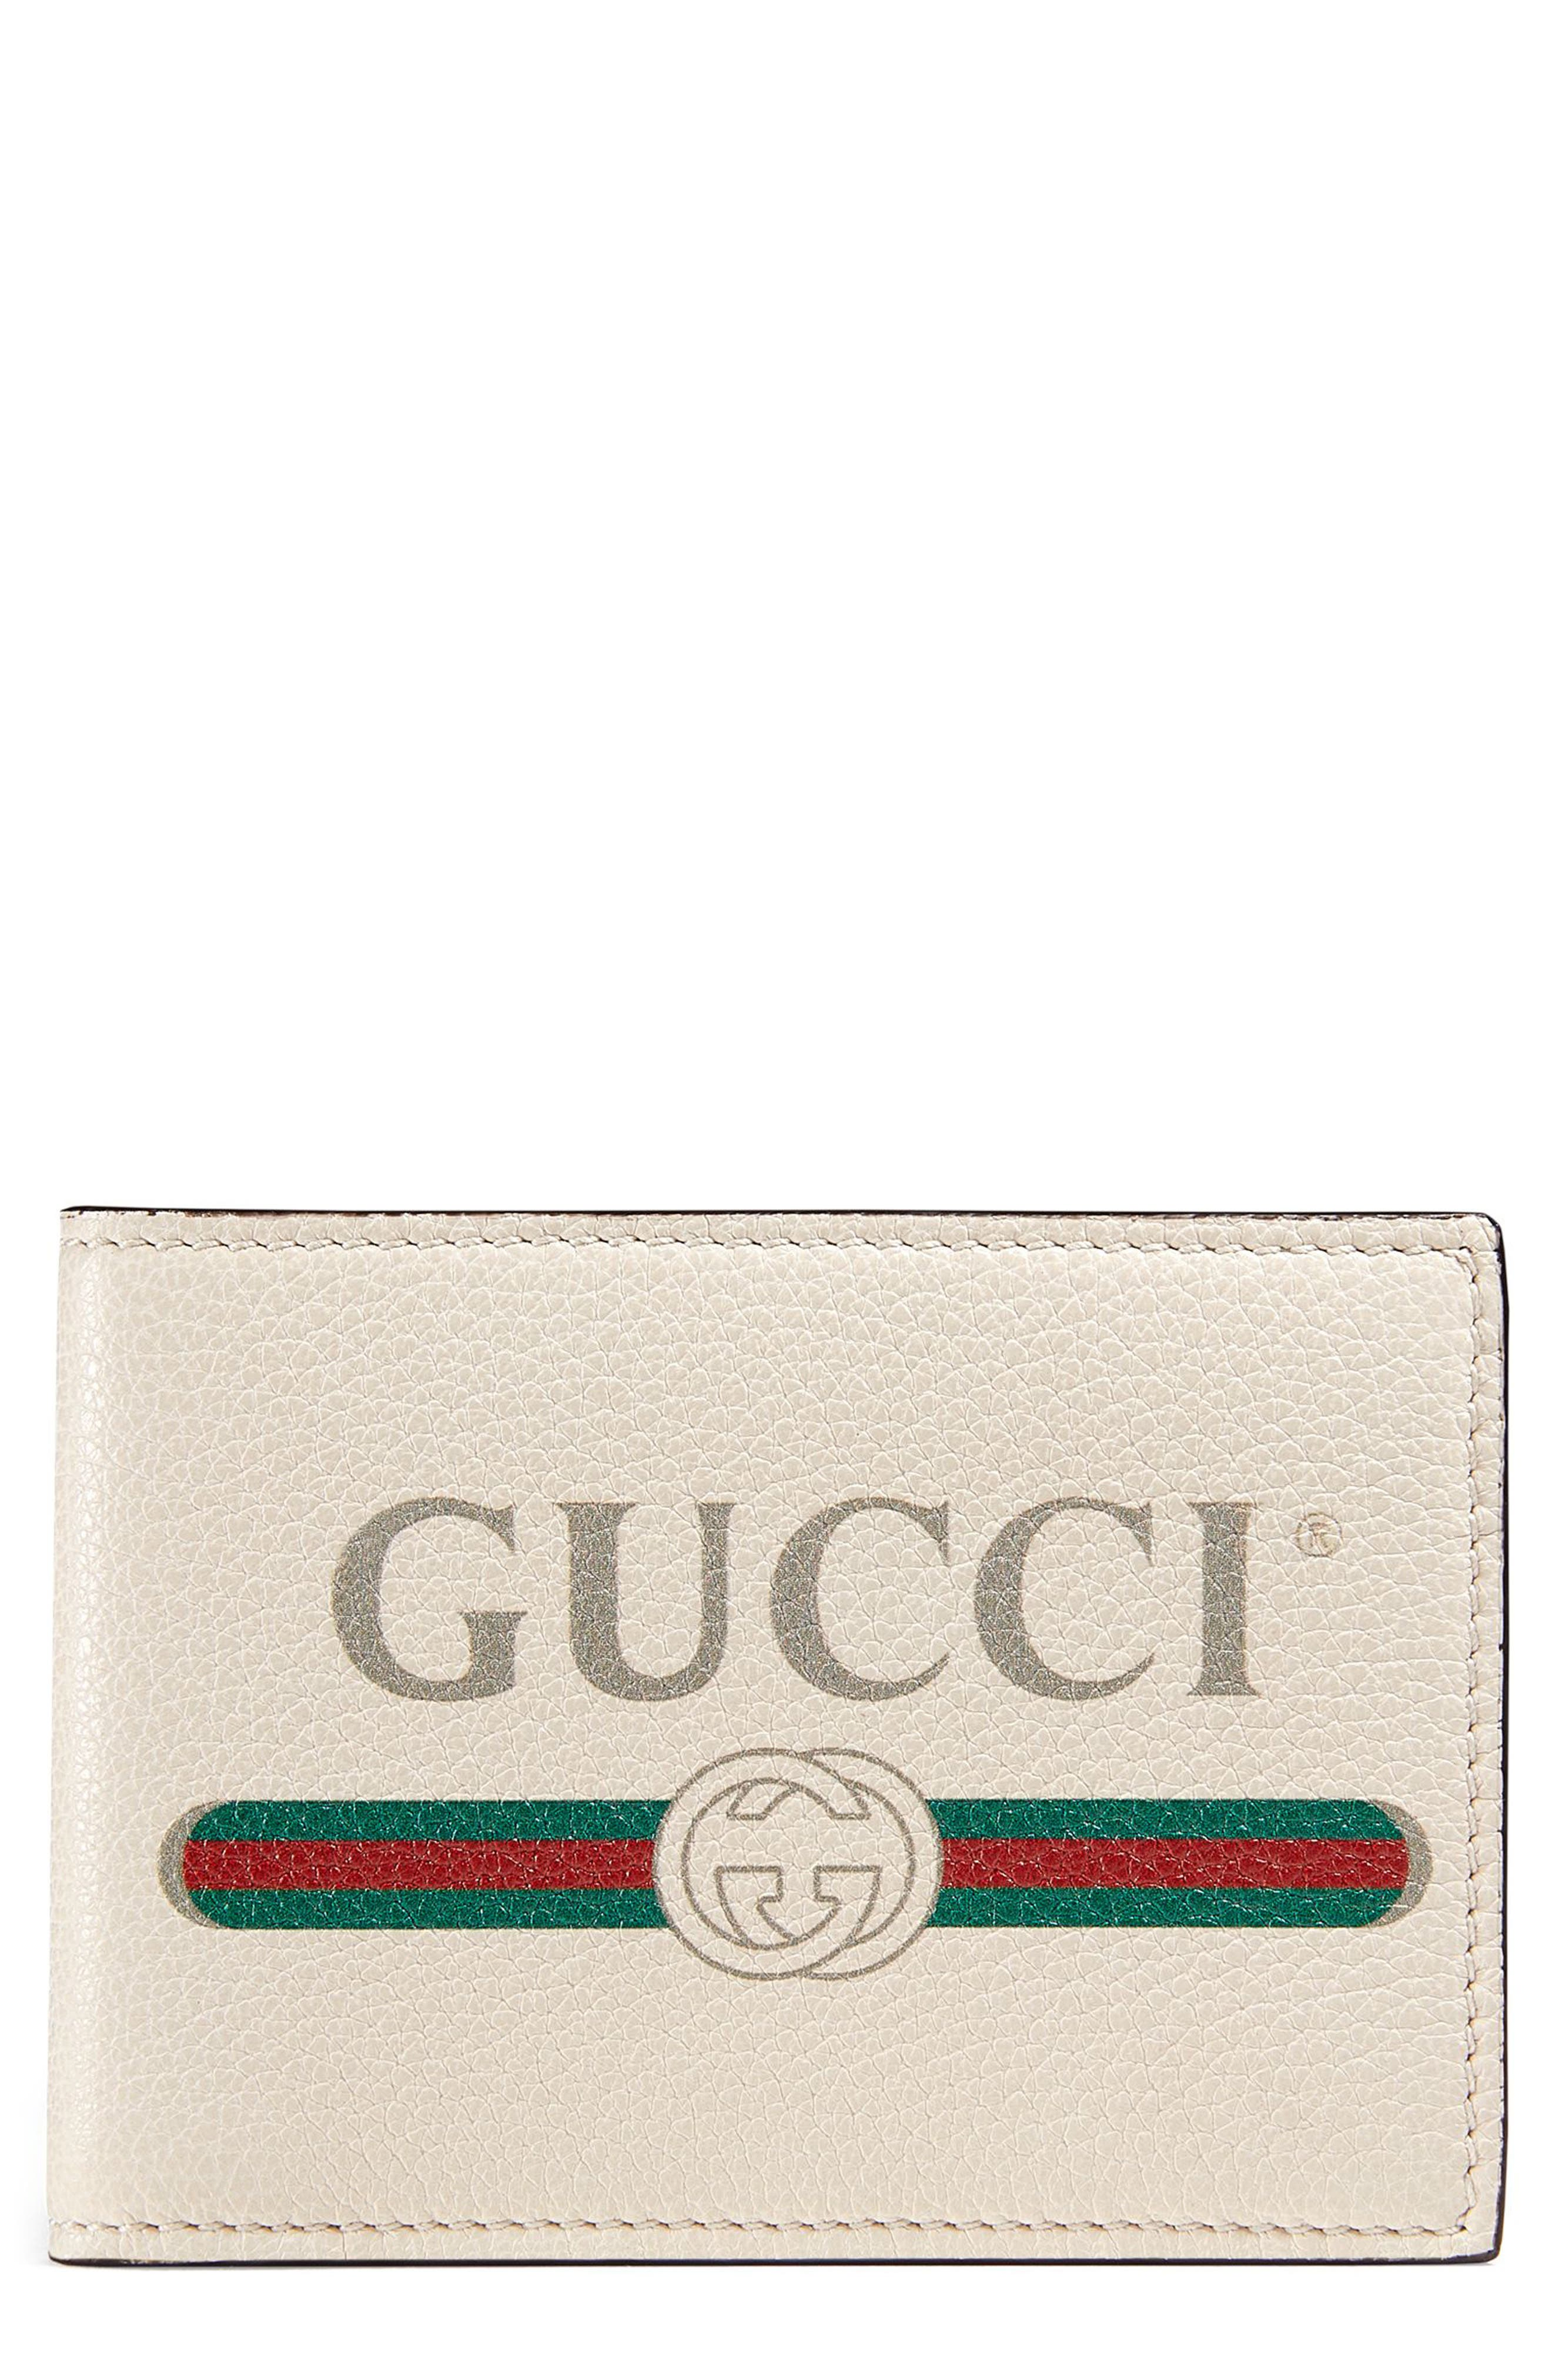 Wallet,                         Main,                         color, White